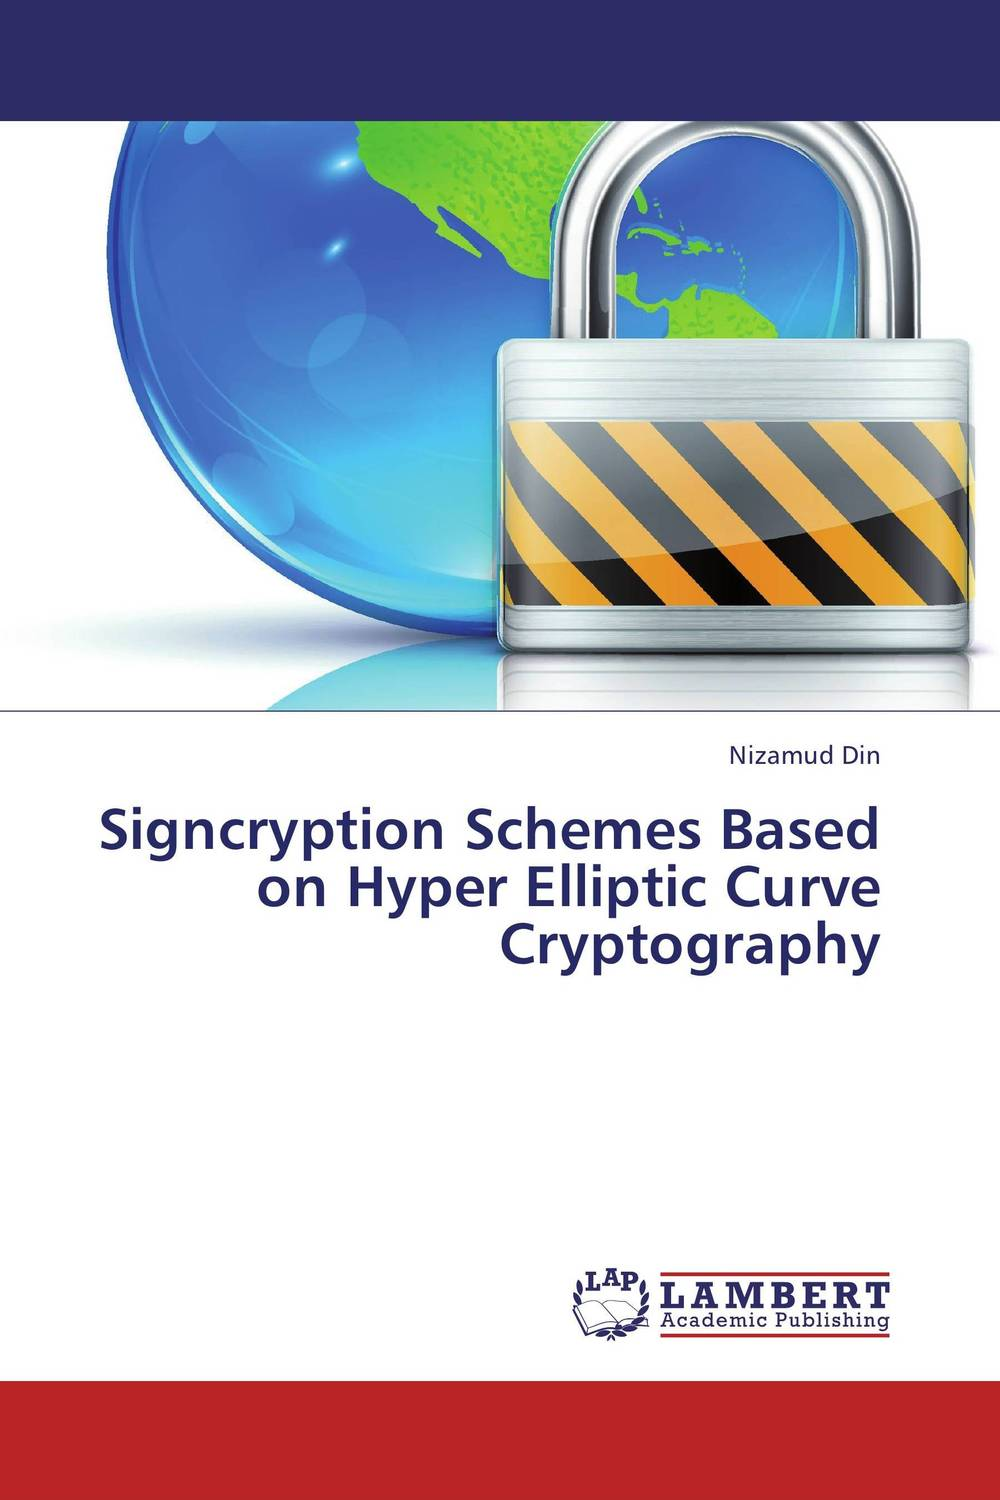 Signcryption Schemes Based on Hyper Elliptic Curve Cryptography secrecy